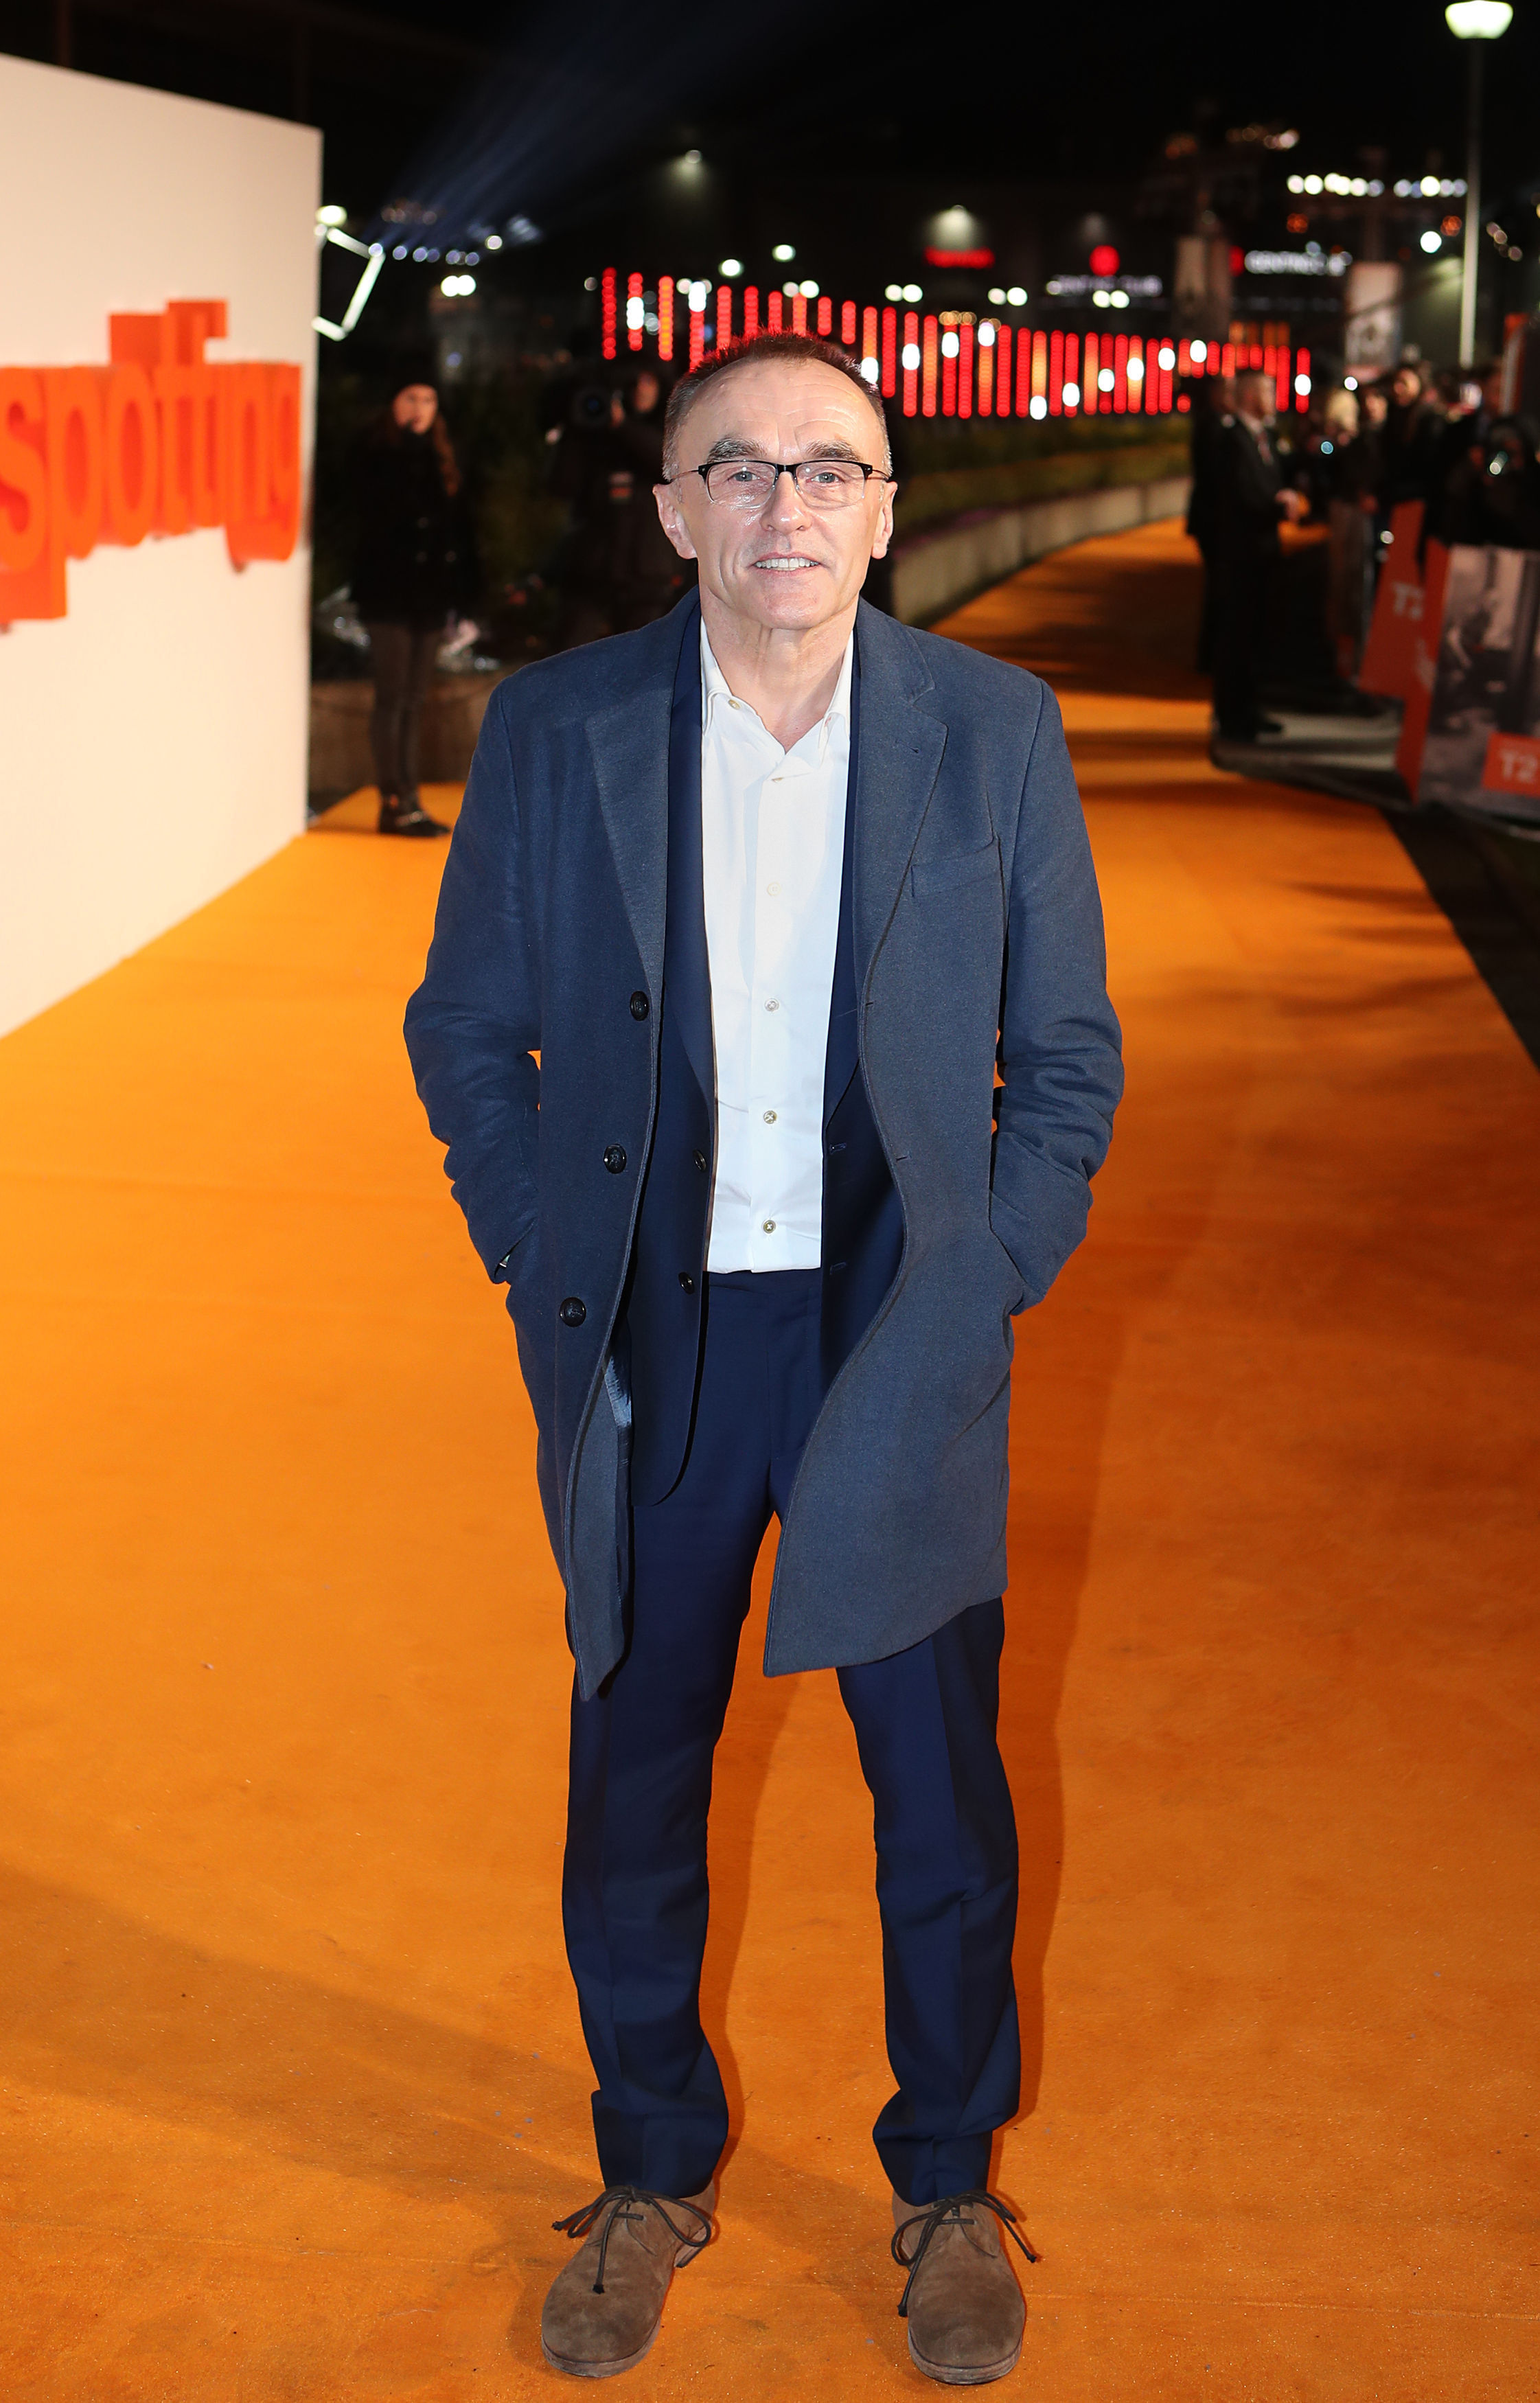 Danny Boyle arriving at the world premiere of Trainspotting 2 at Cineworld in Edinburgh. Picture: Jane Barlow/PA Wire.